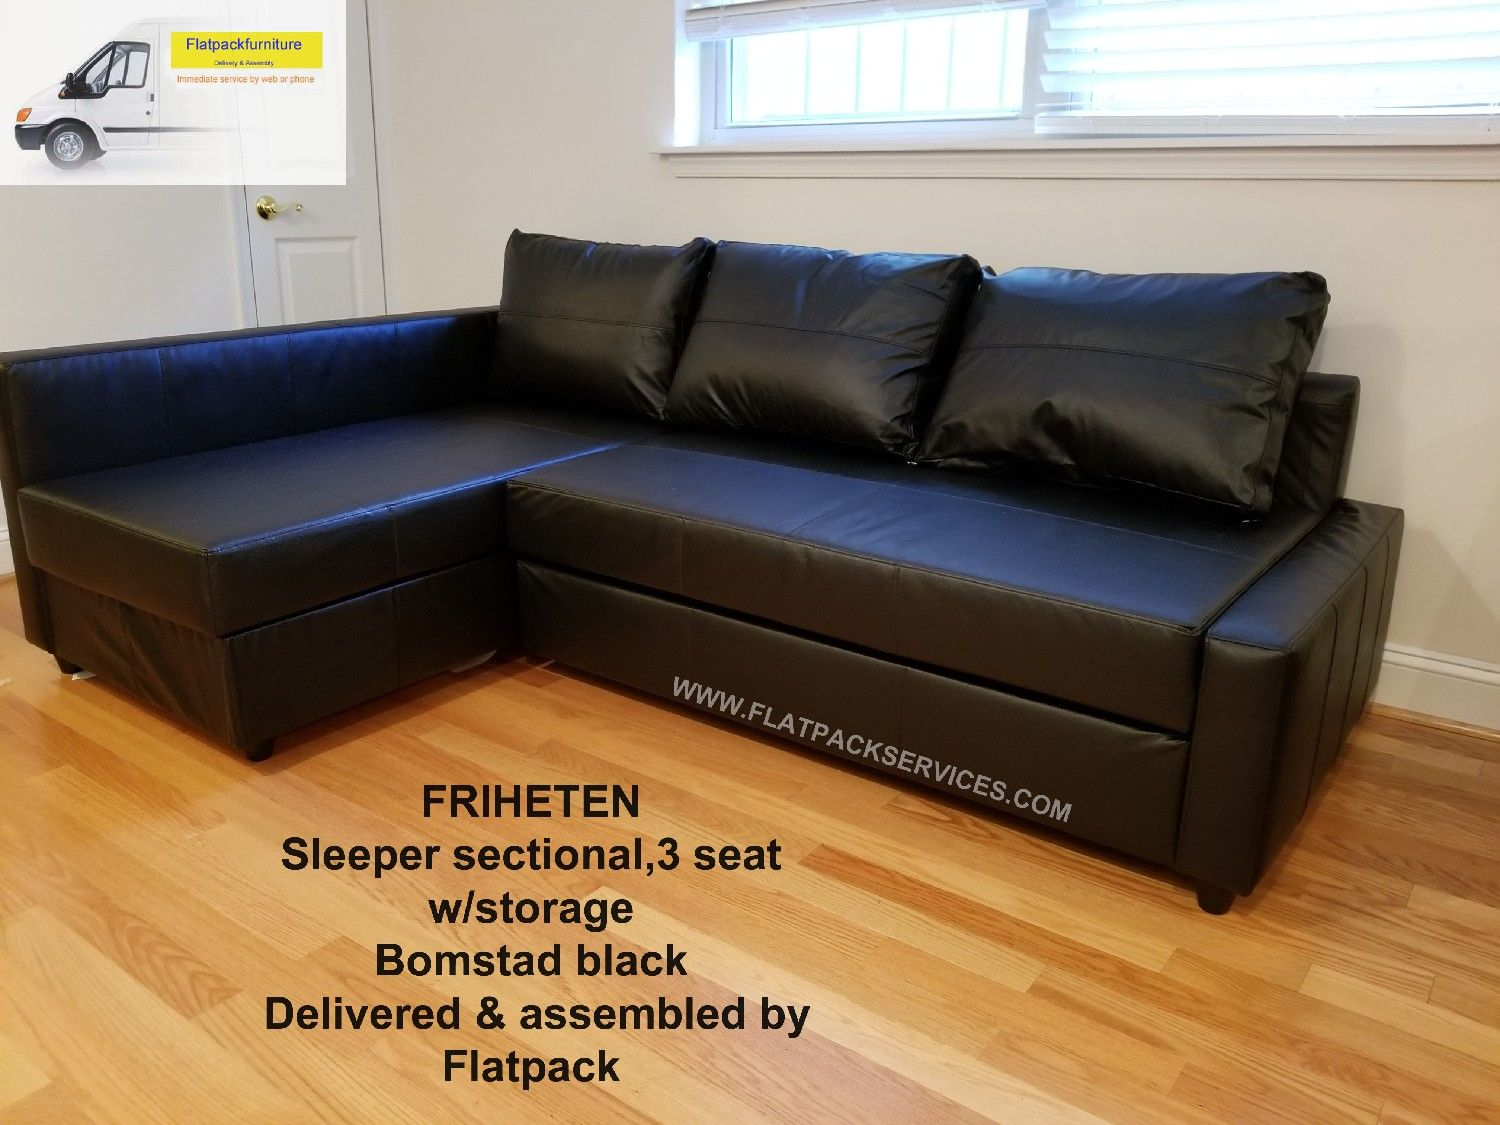 Merveilleux Friheten Sofa Assembly Best Furniture Assembly In Washington, DC U2013 Yelp  Furniture Assembly And Installation Specialist In Washington DC The 10 Best  ...